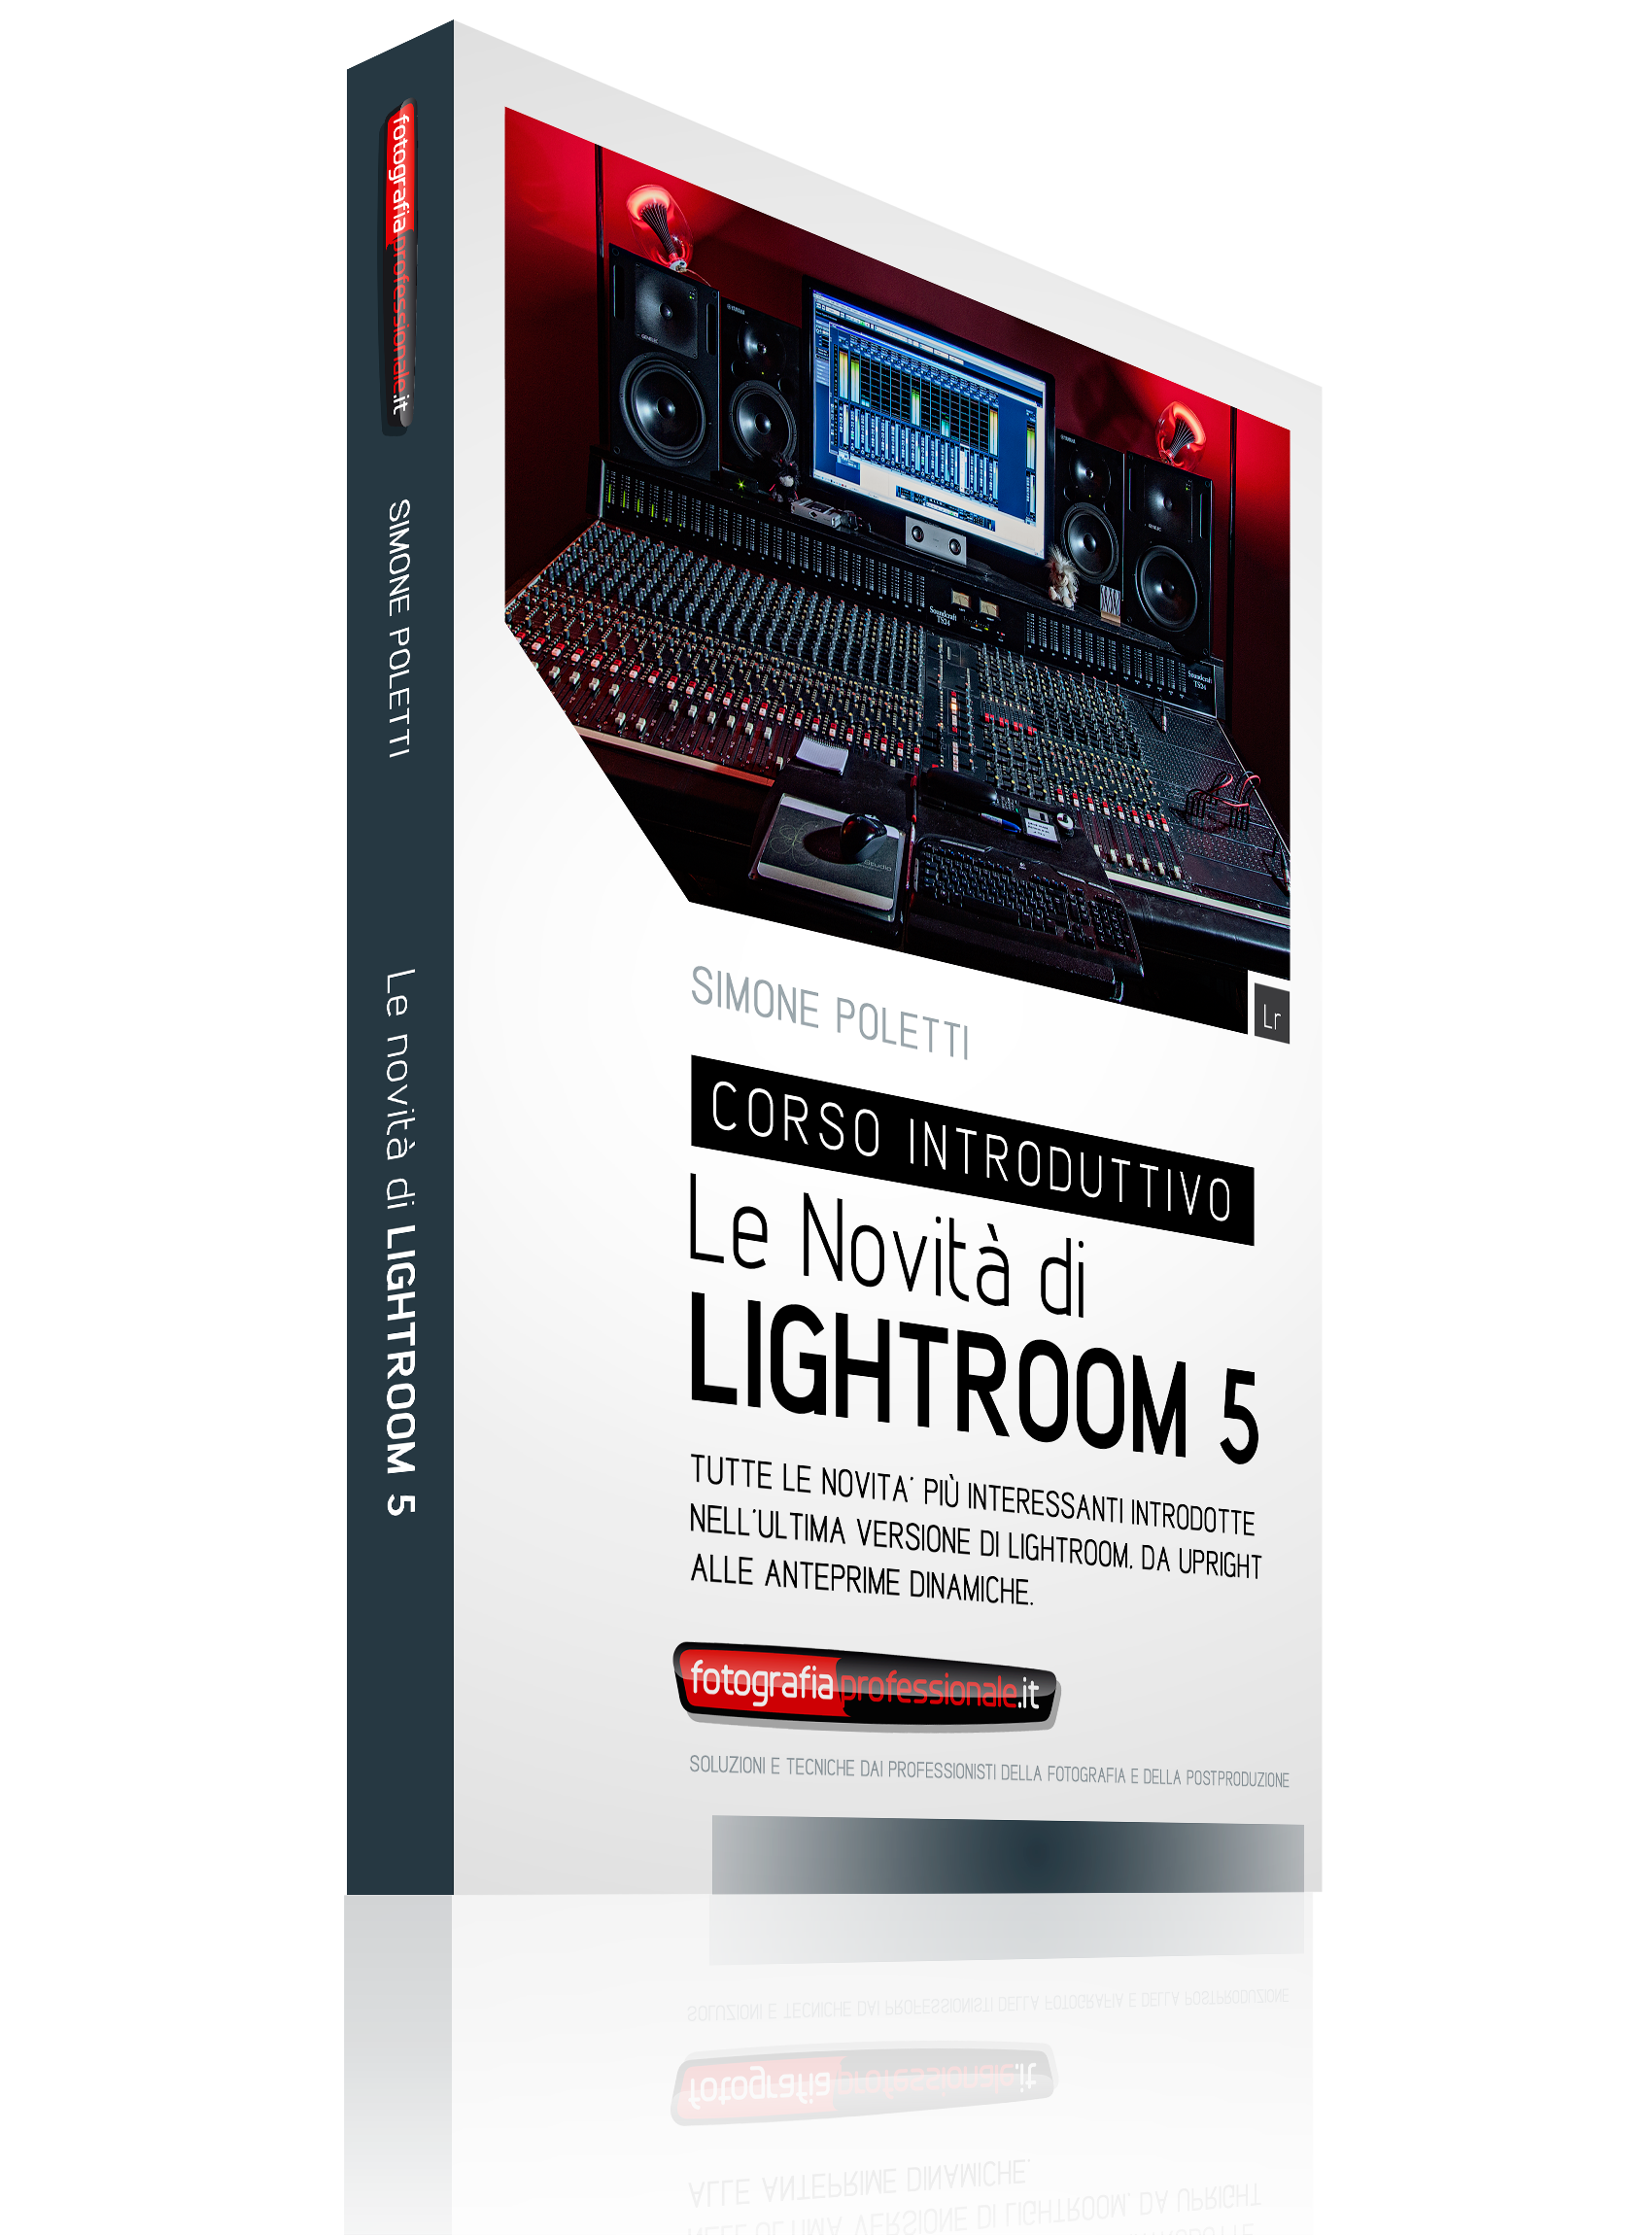 Le Novità di Lightroom 5